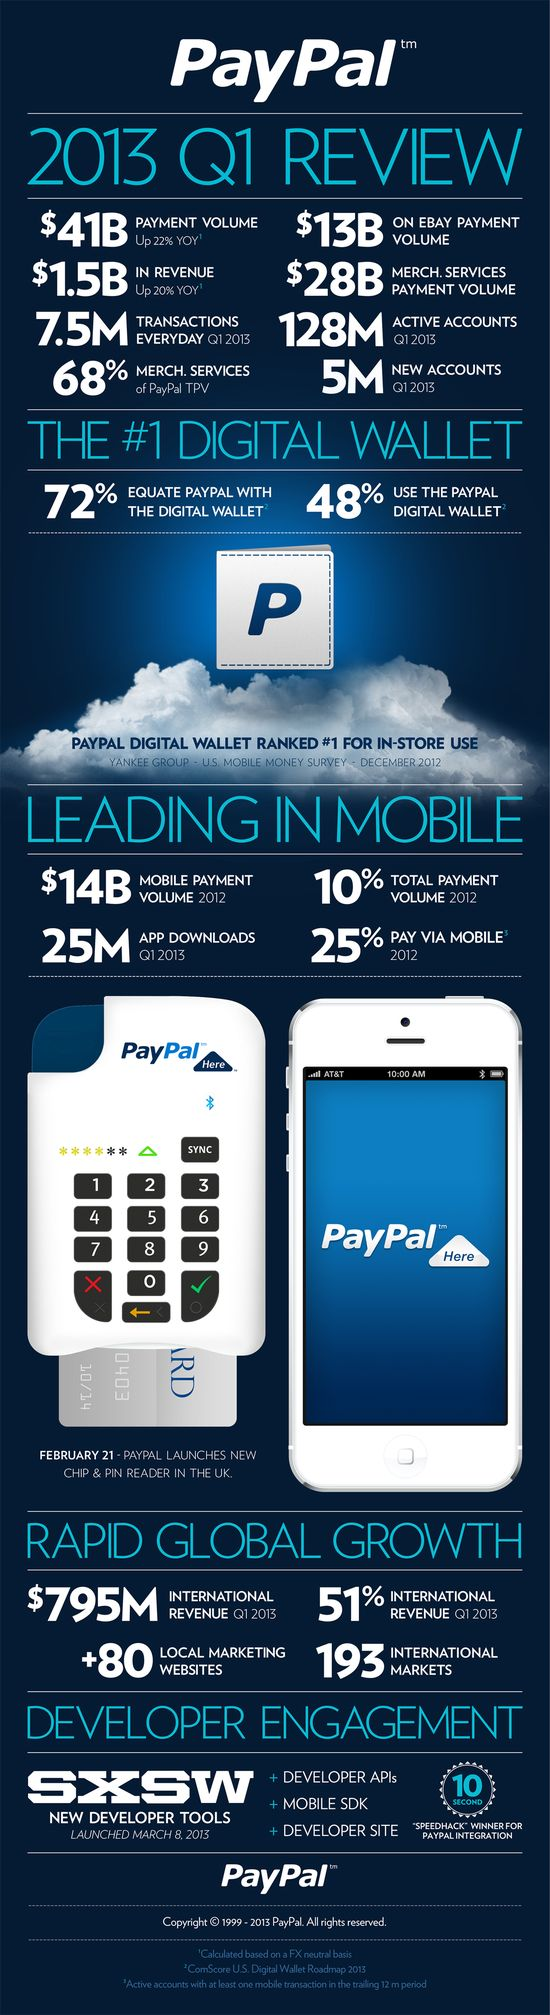 PayPal Q1 2013 Financial Report